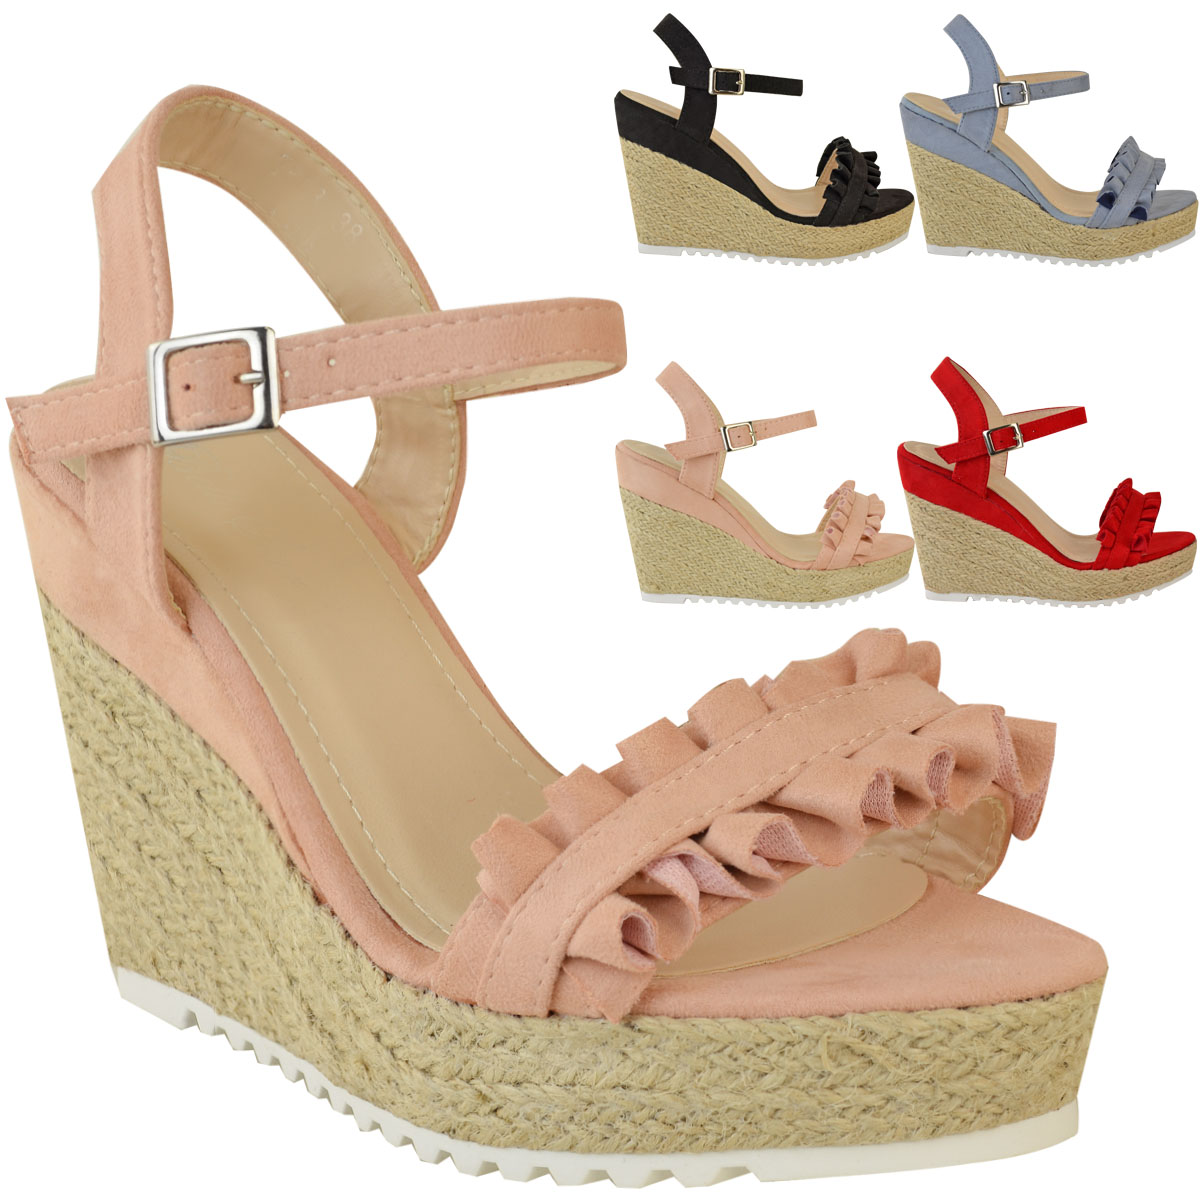 Womens Ladies Summer High Heel Wedge Frill Sandals Platforms Espadrilles Strappy